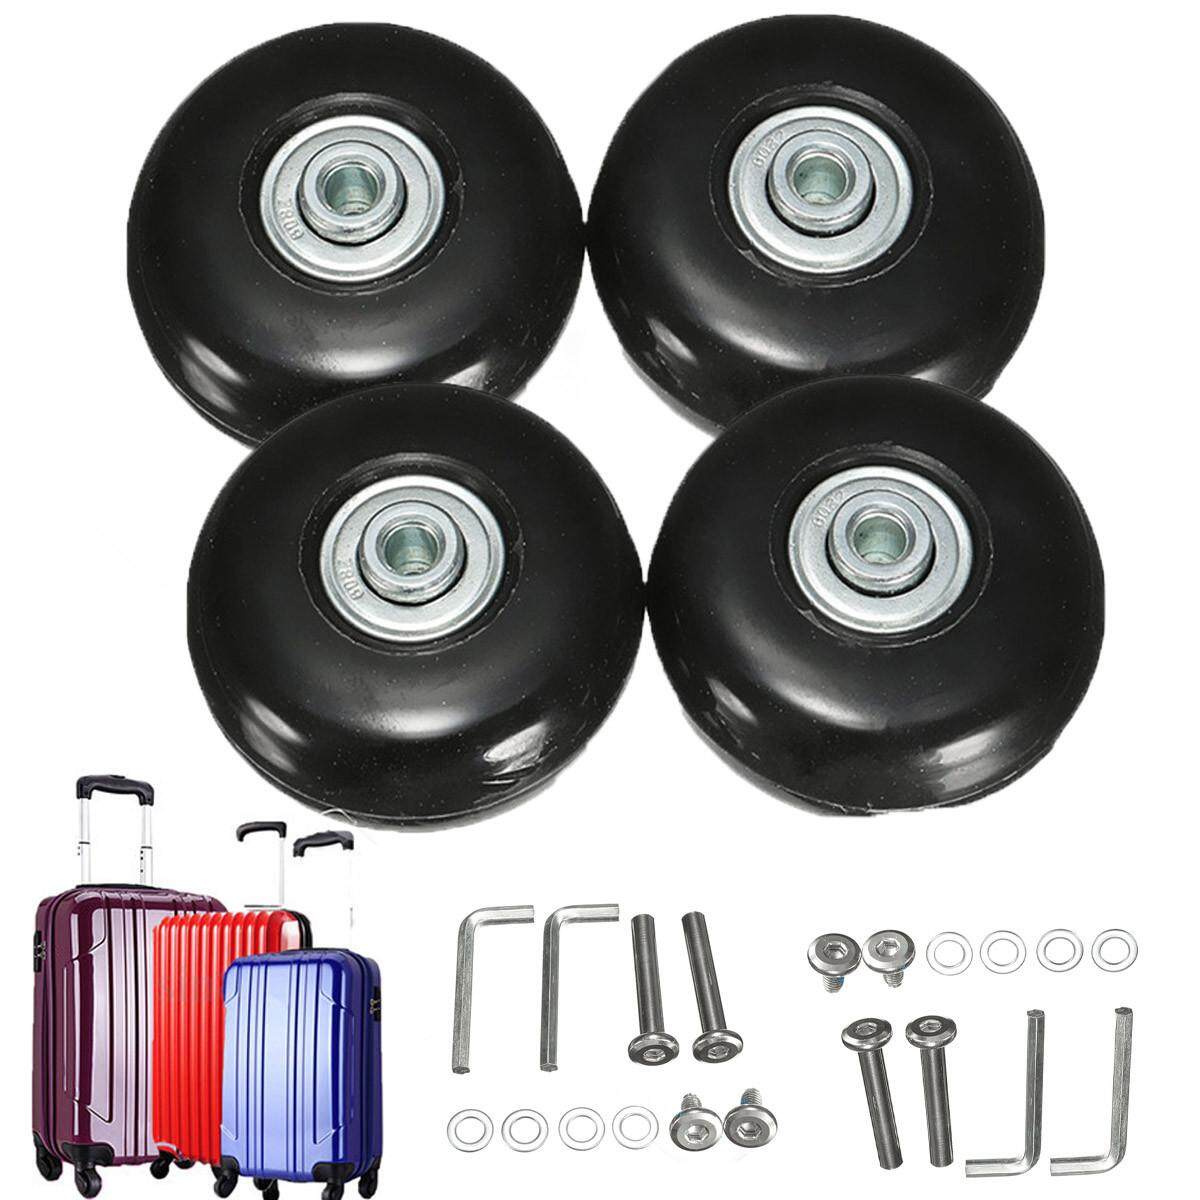 2 Sets Rubber Luggage Suitcase Wheels Replacement Axles Deluxe Repair Od 55mm By Audew.